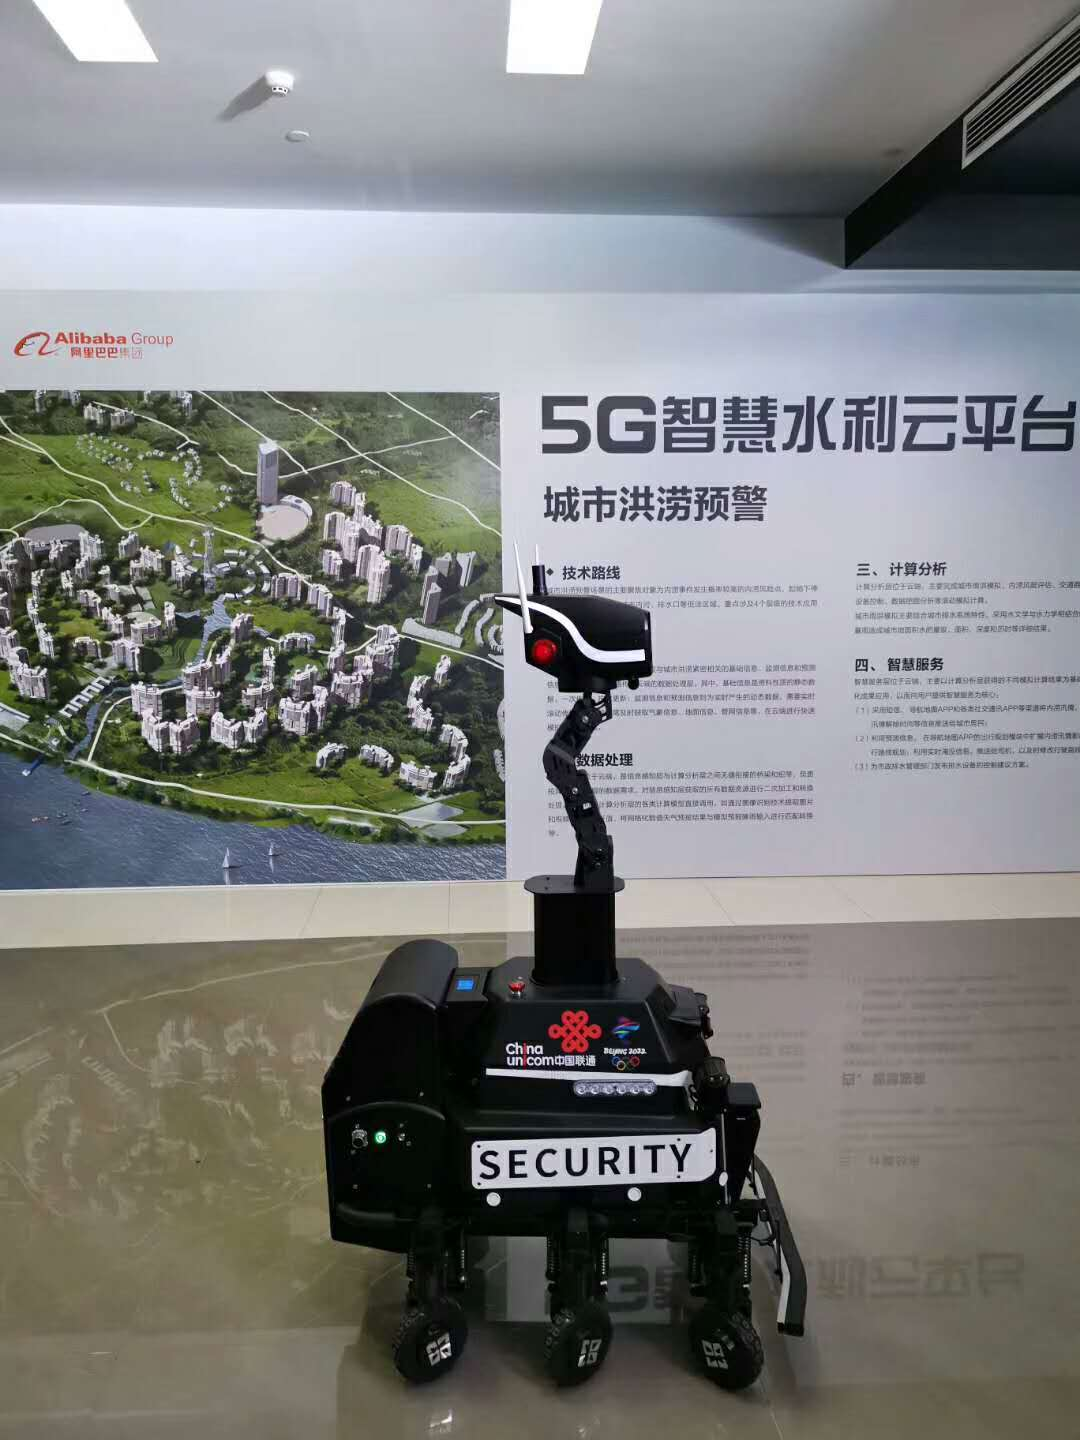 Security Robot New Generation 5G All Weather All Terrain 6 Drive Patrol Robot DEFA Series